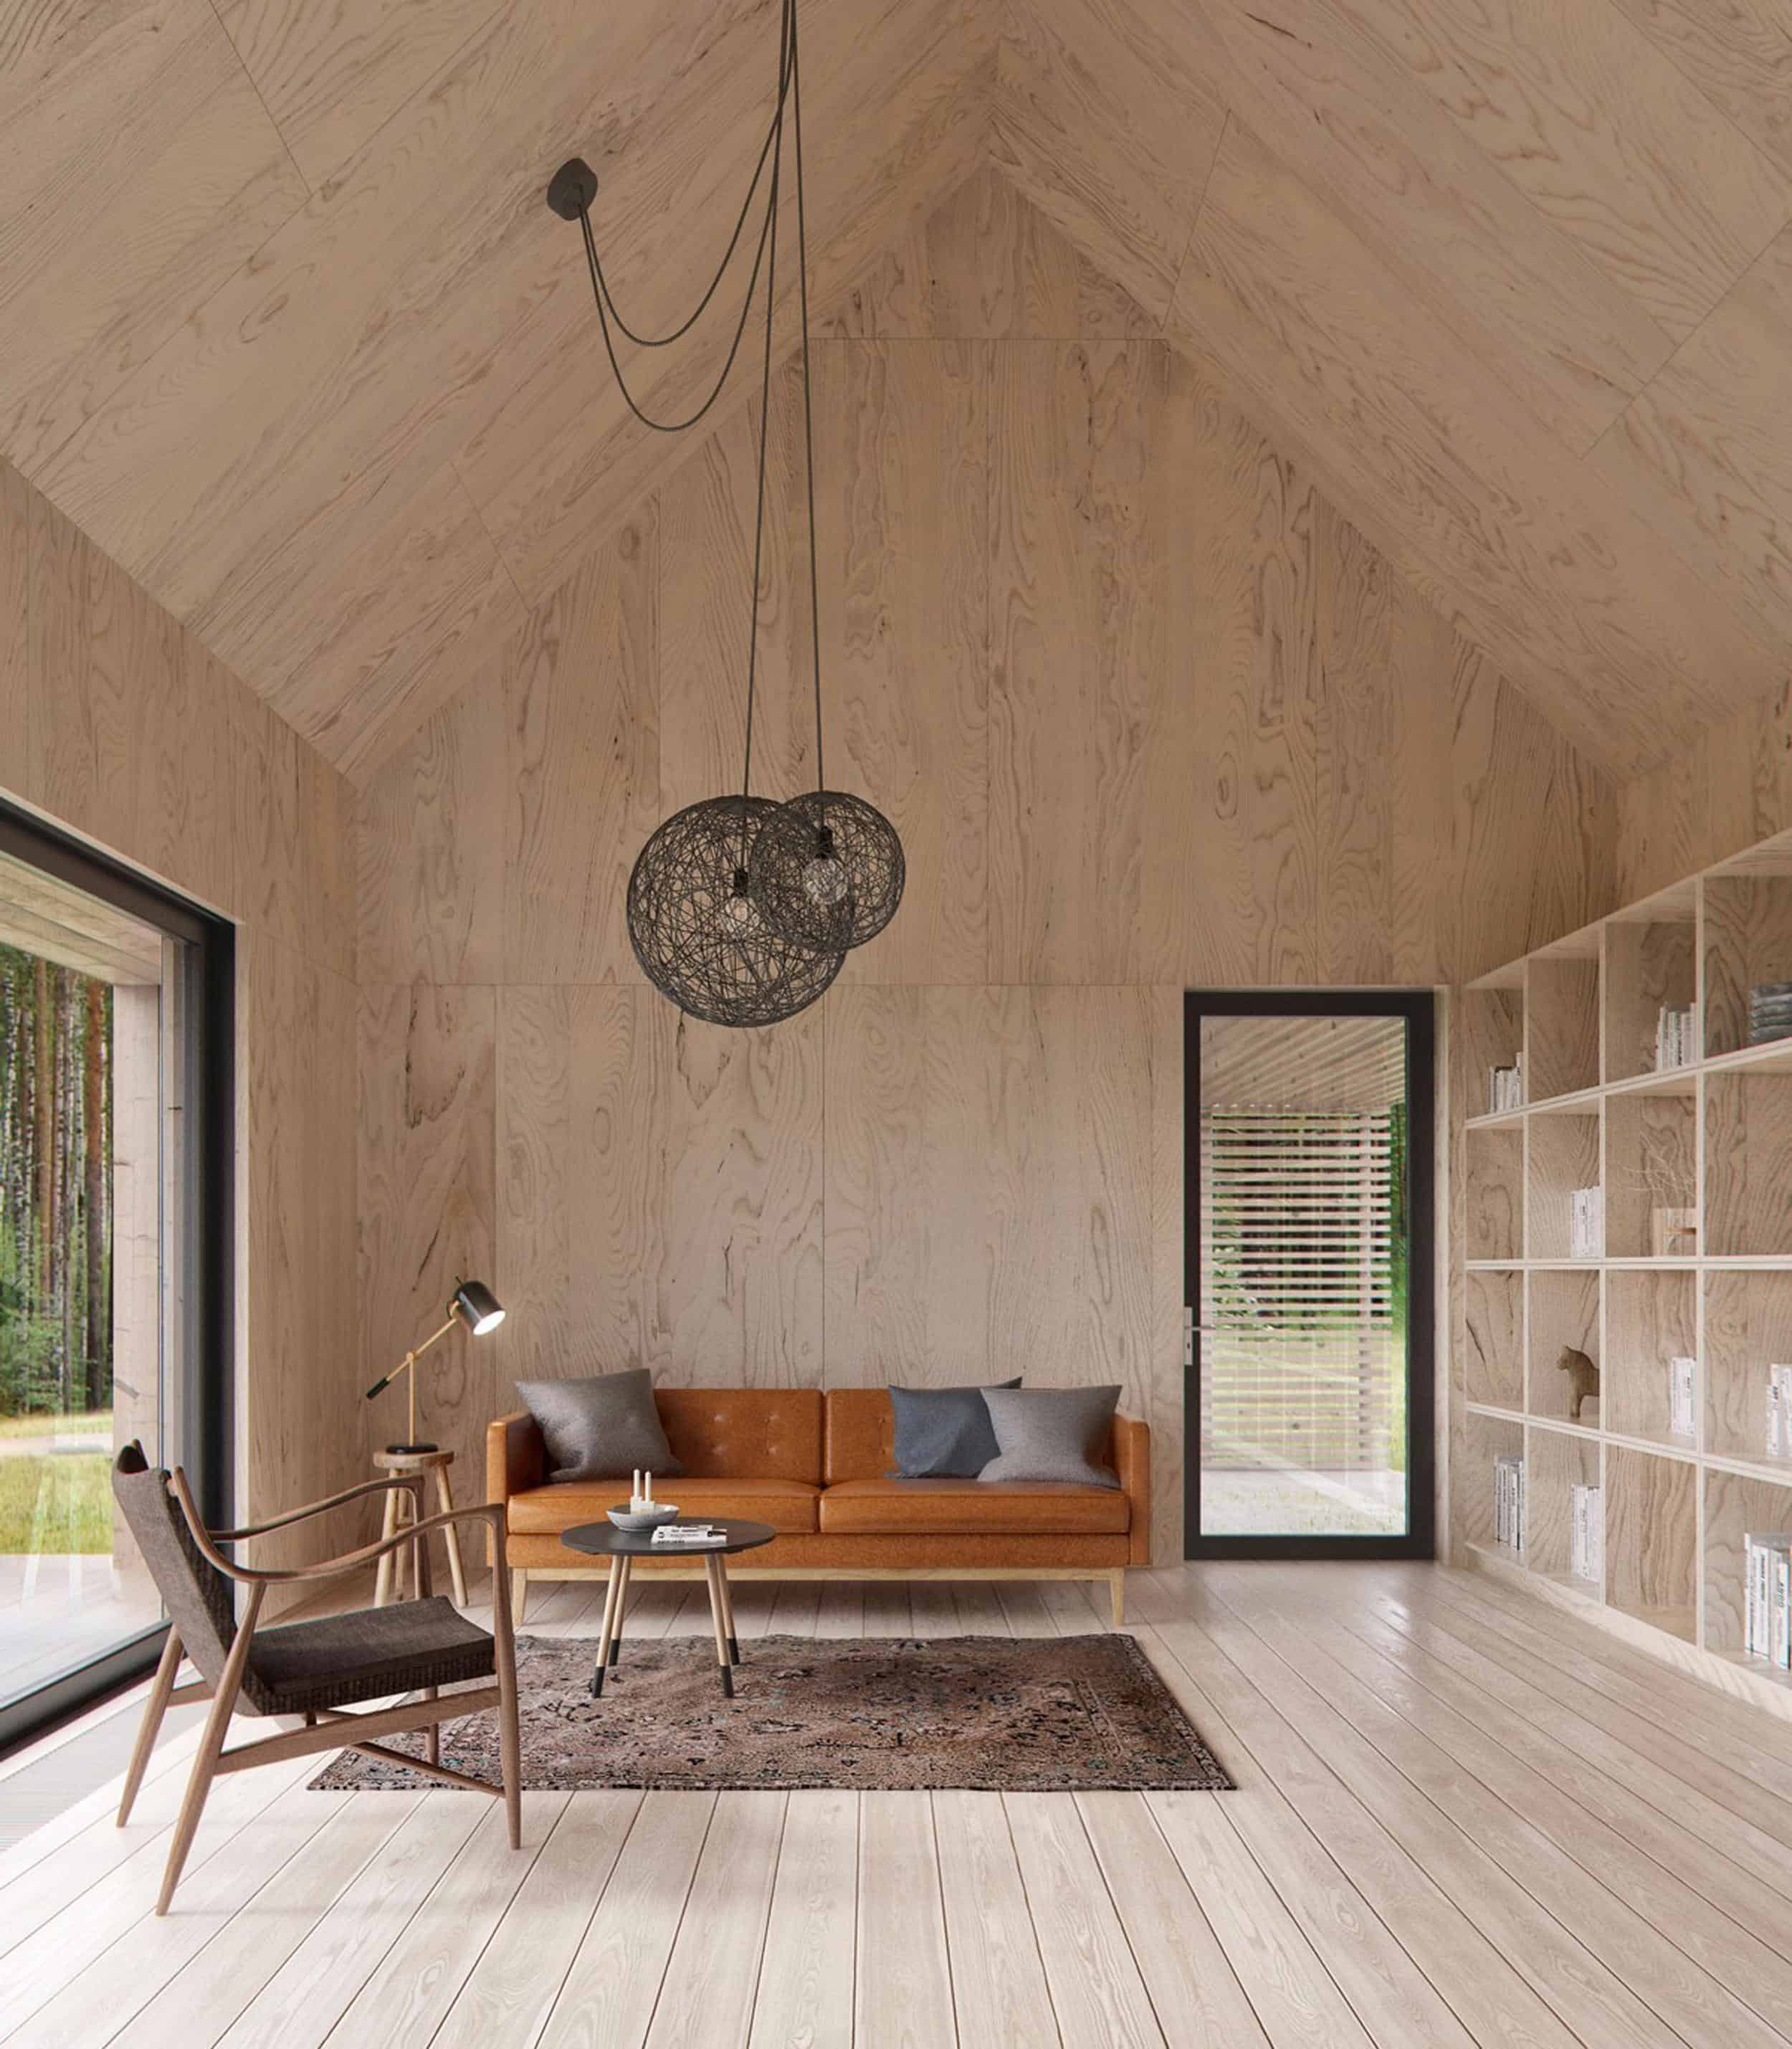 Emily Henderson How To Add Character To Basic Architecture Walls Celings Wood Unfinished Raw 4